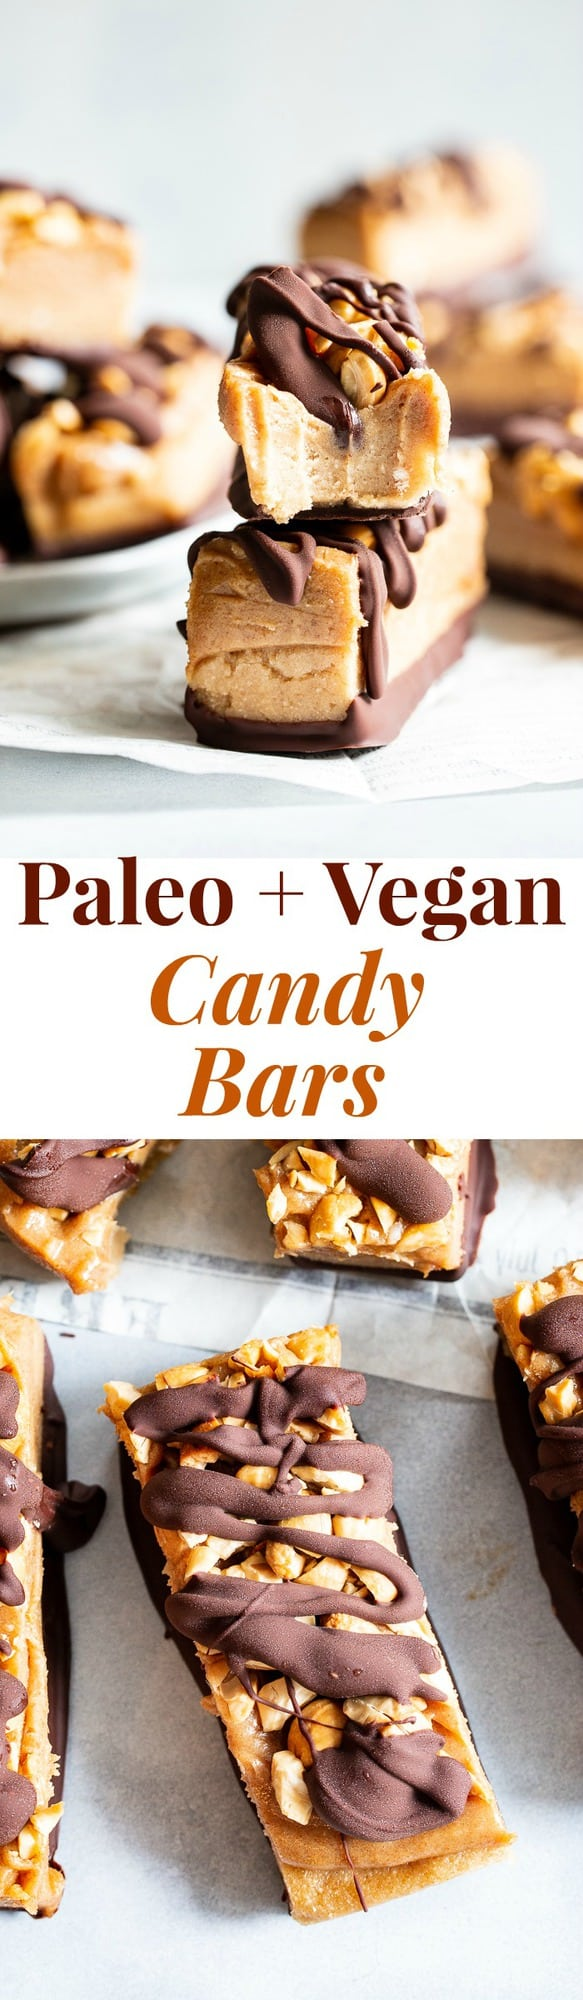 These gooey sweet healthy candy bars are packed with good for you ingredients like fruit and nuts, but taste 100% like a legit rich chewy candy bar!  These paleo and vegan candy bars are gluten free, egg free, dairy-free and free of refined sugar.